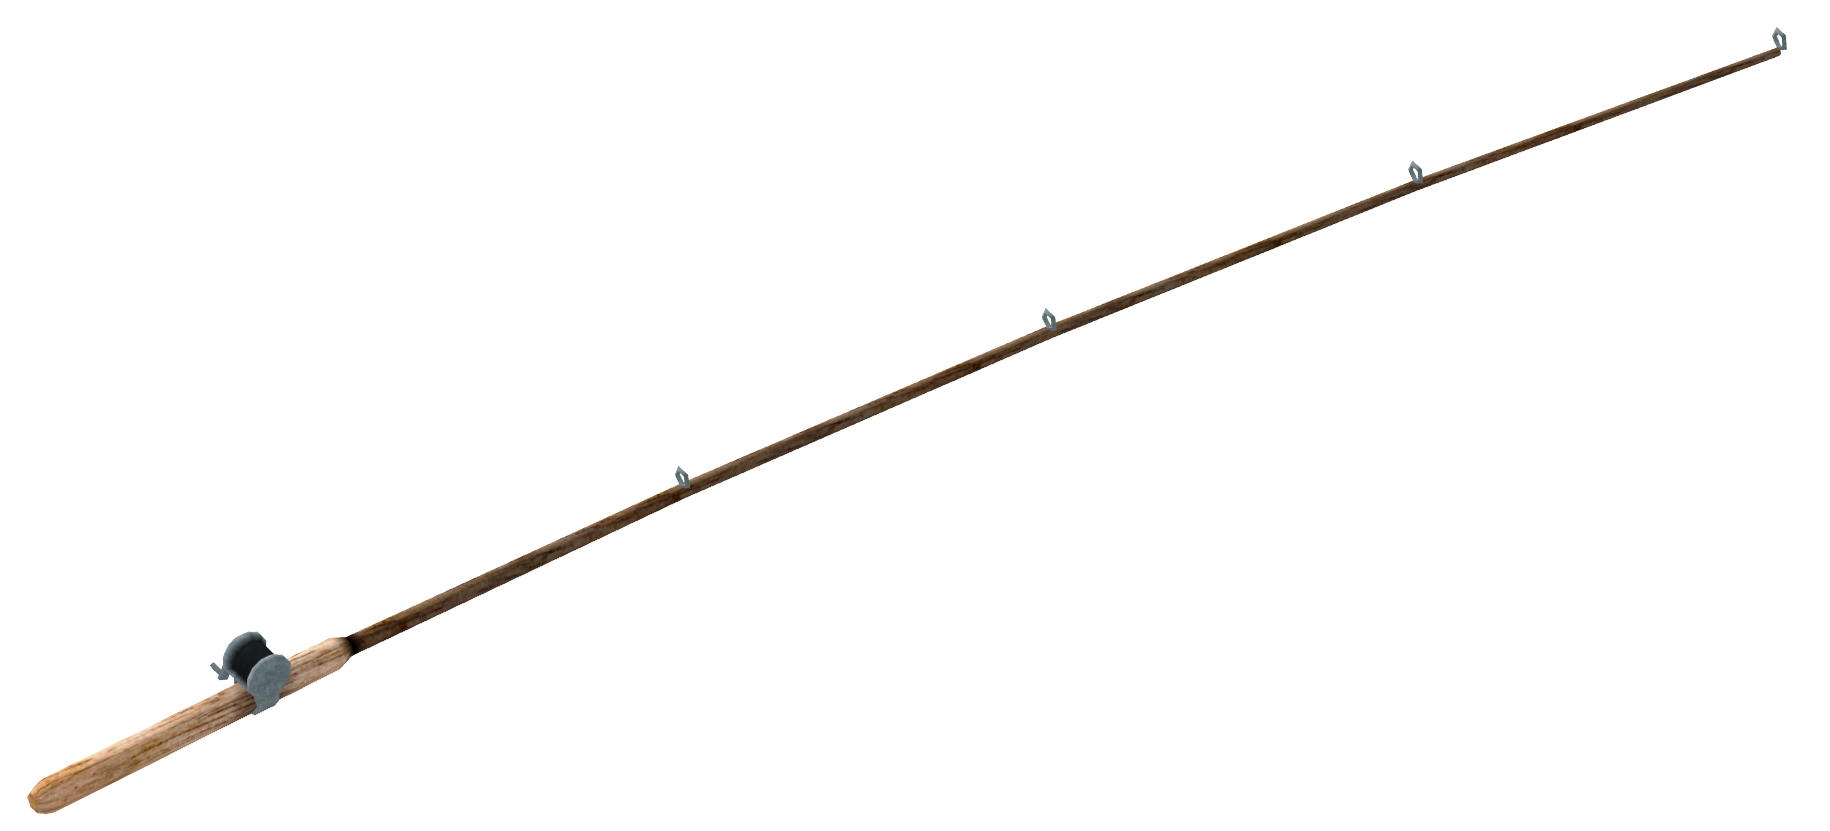 Fisherman clipart fishing pole, Fisherman fishing pole.